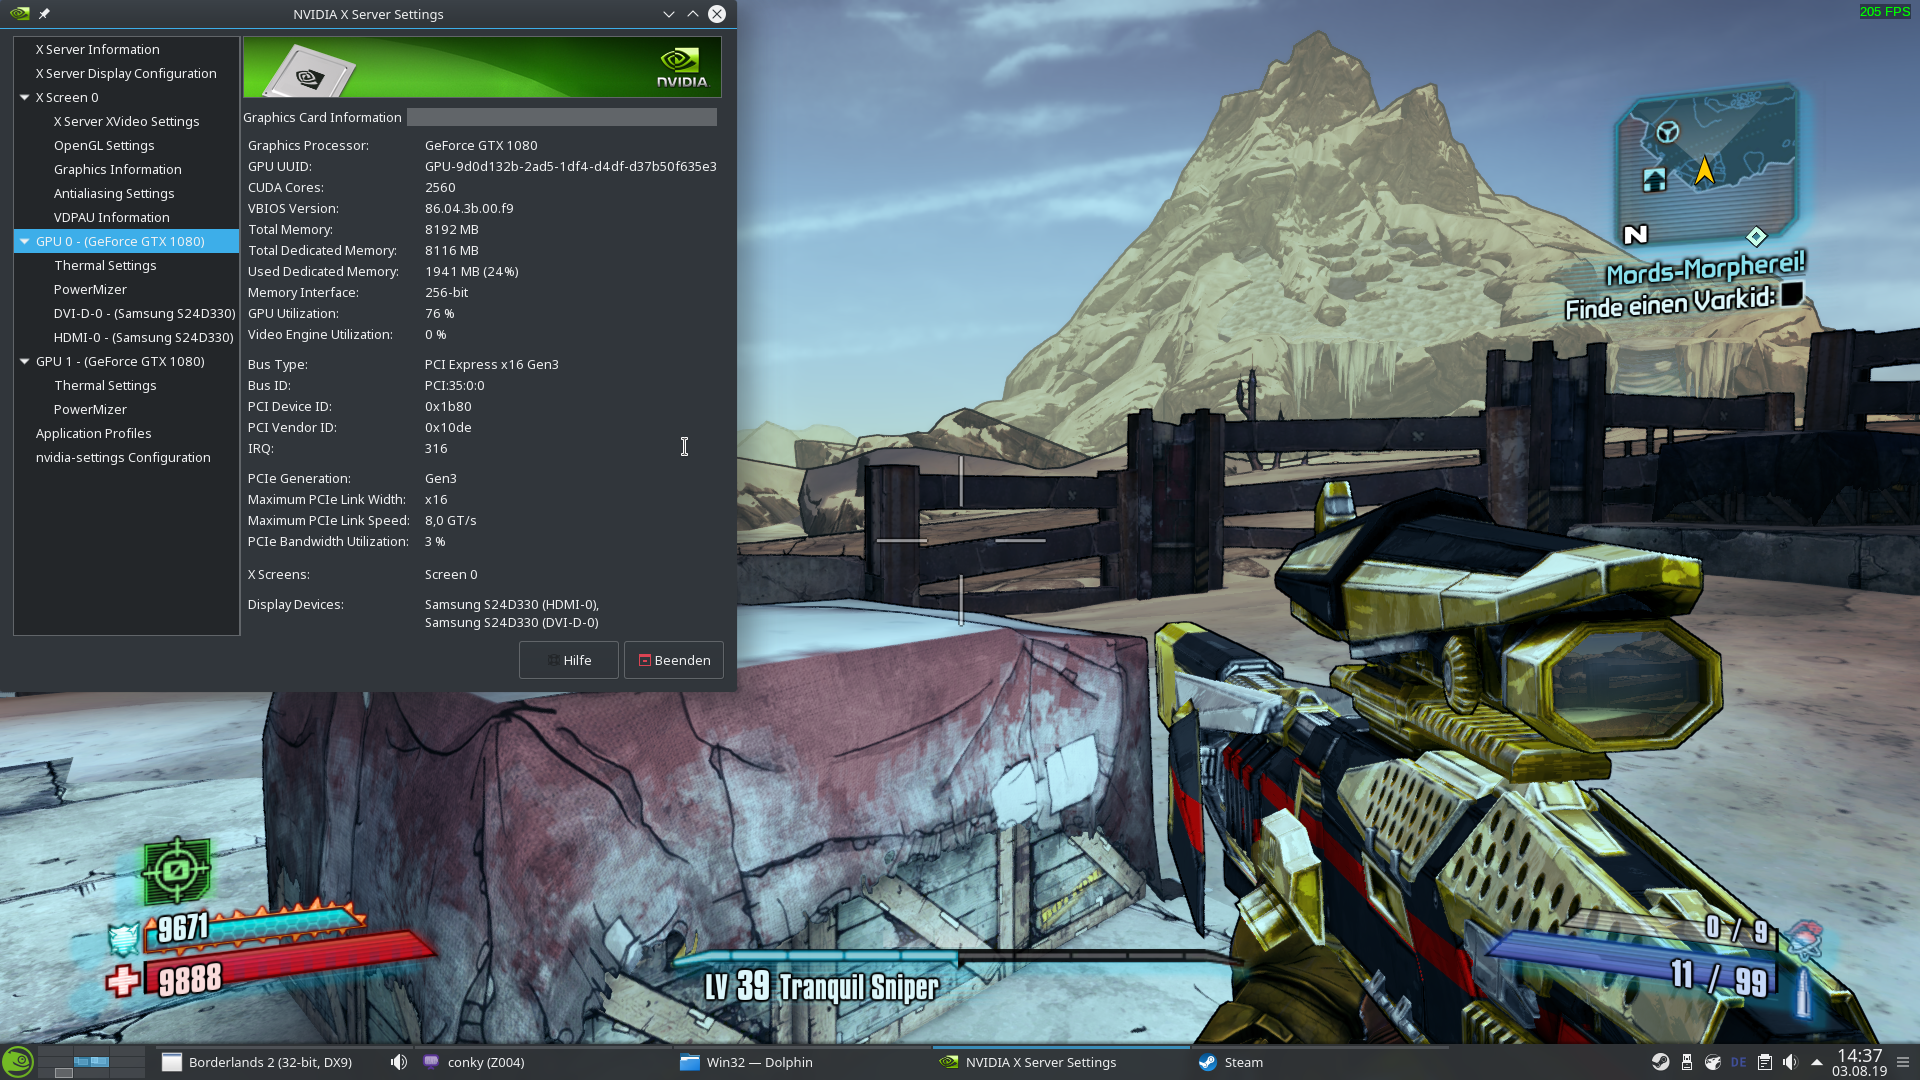 Borderlands 2 runs out of video memory (or so it says